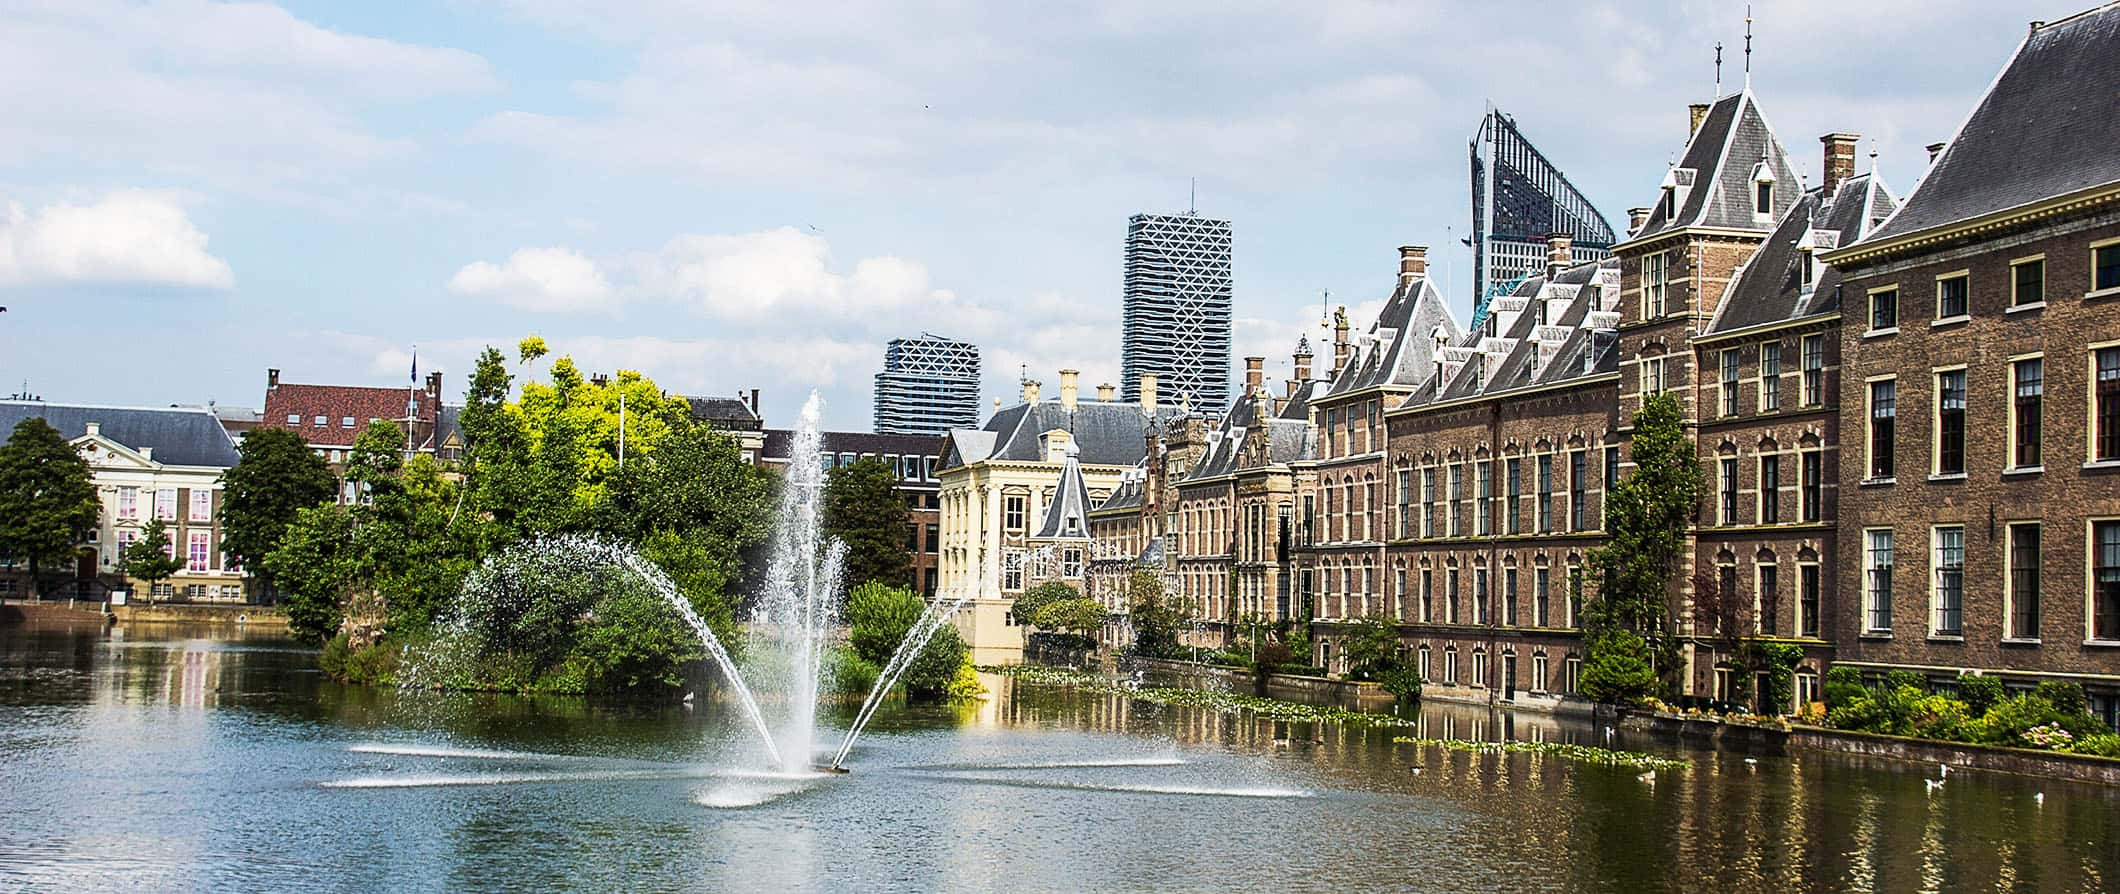 The Hague Travel Guide: What to See, Do, Costs, & Ways to Save